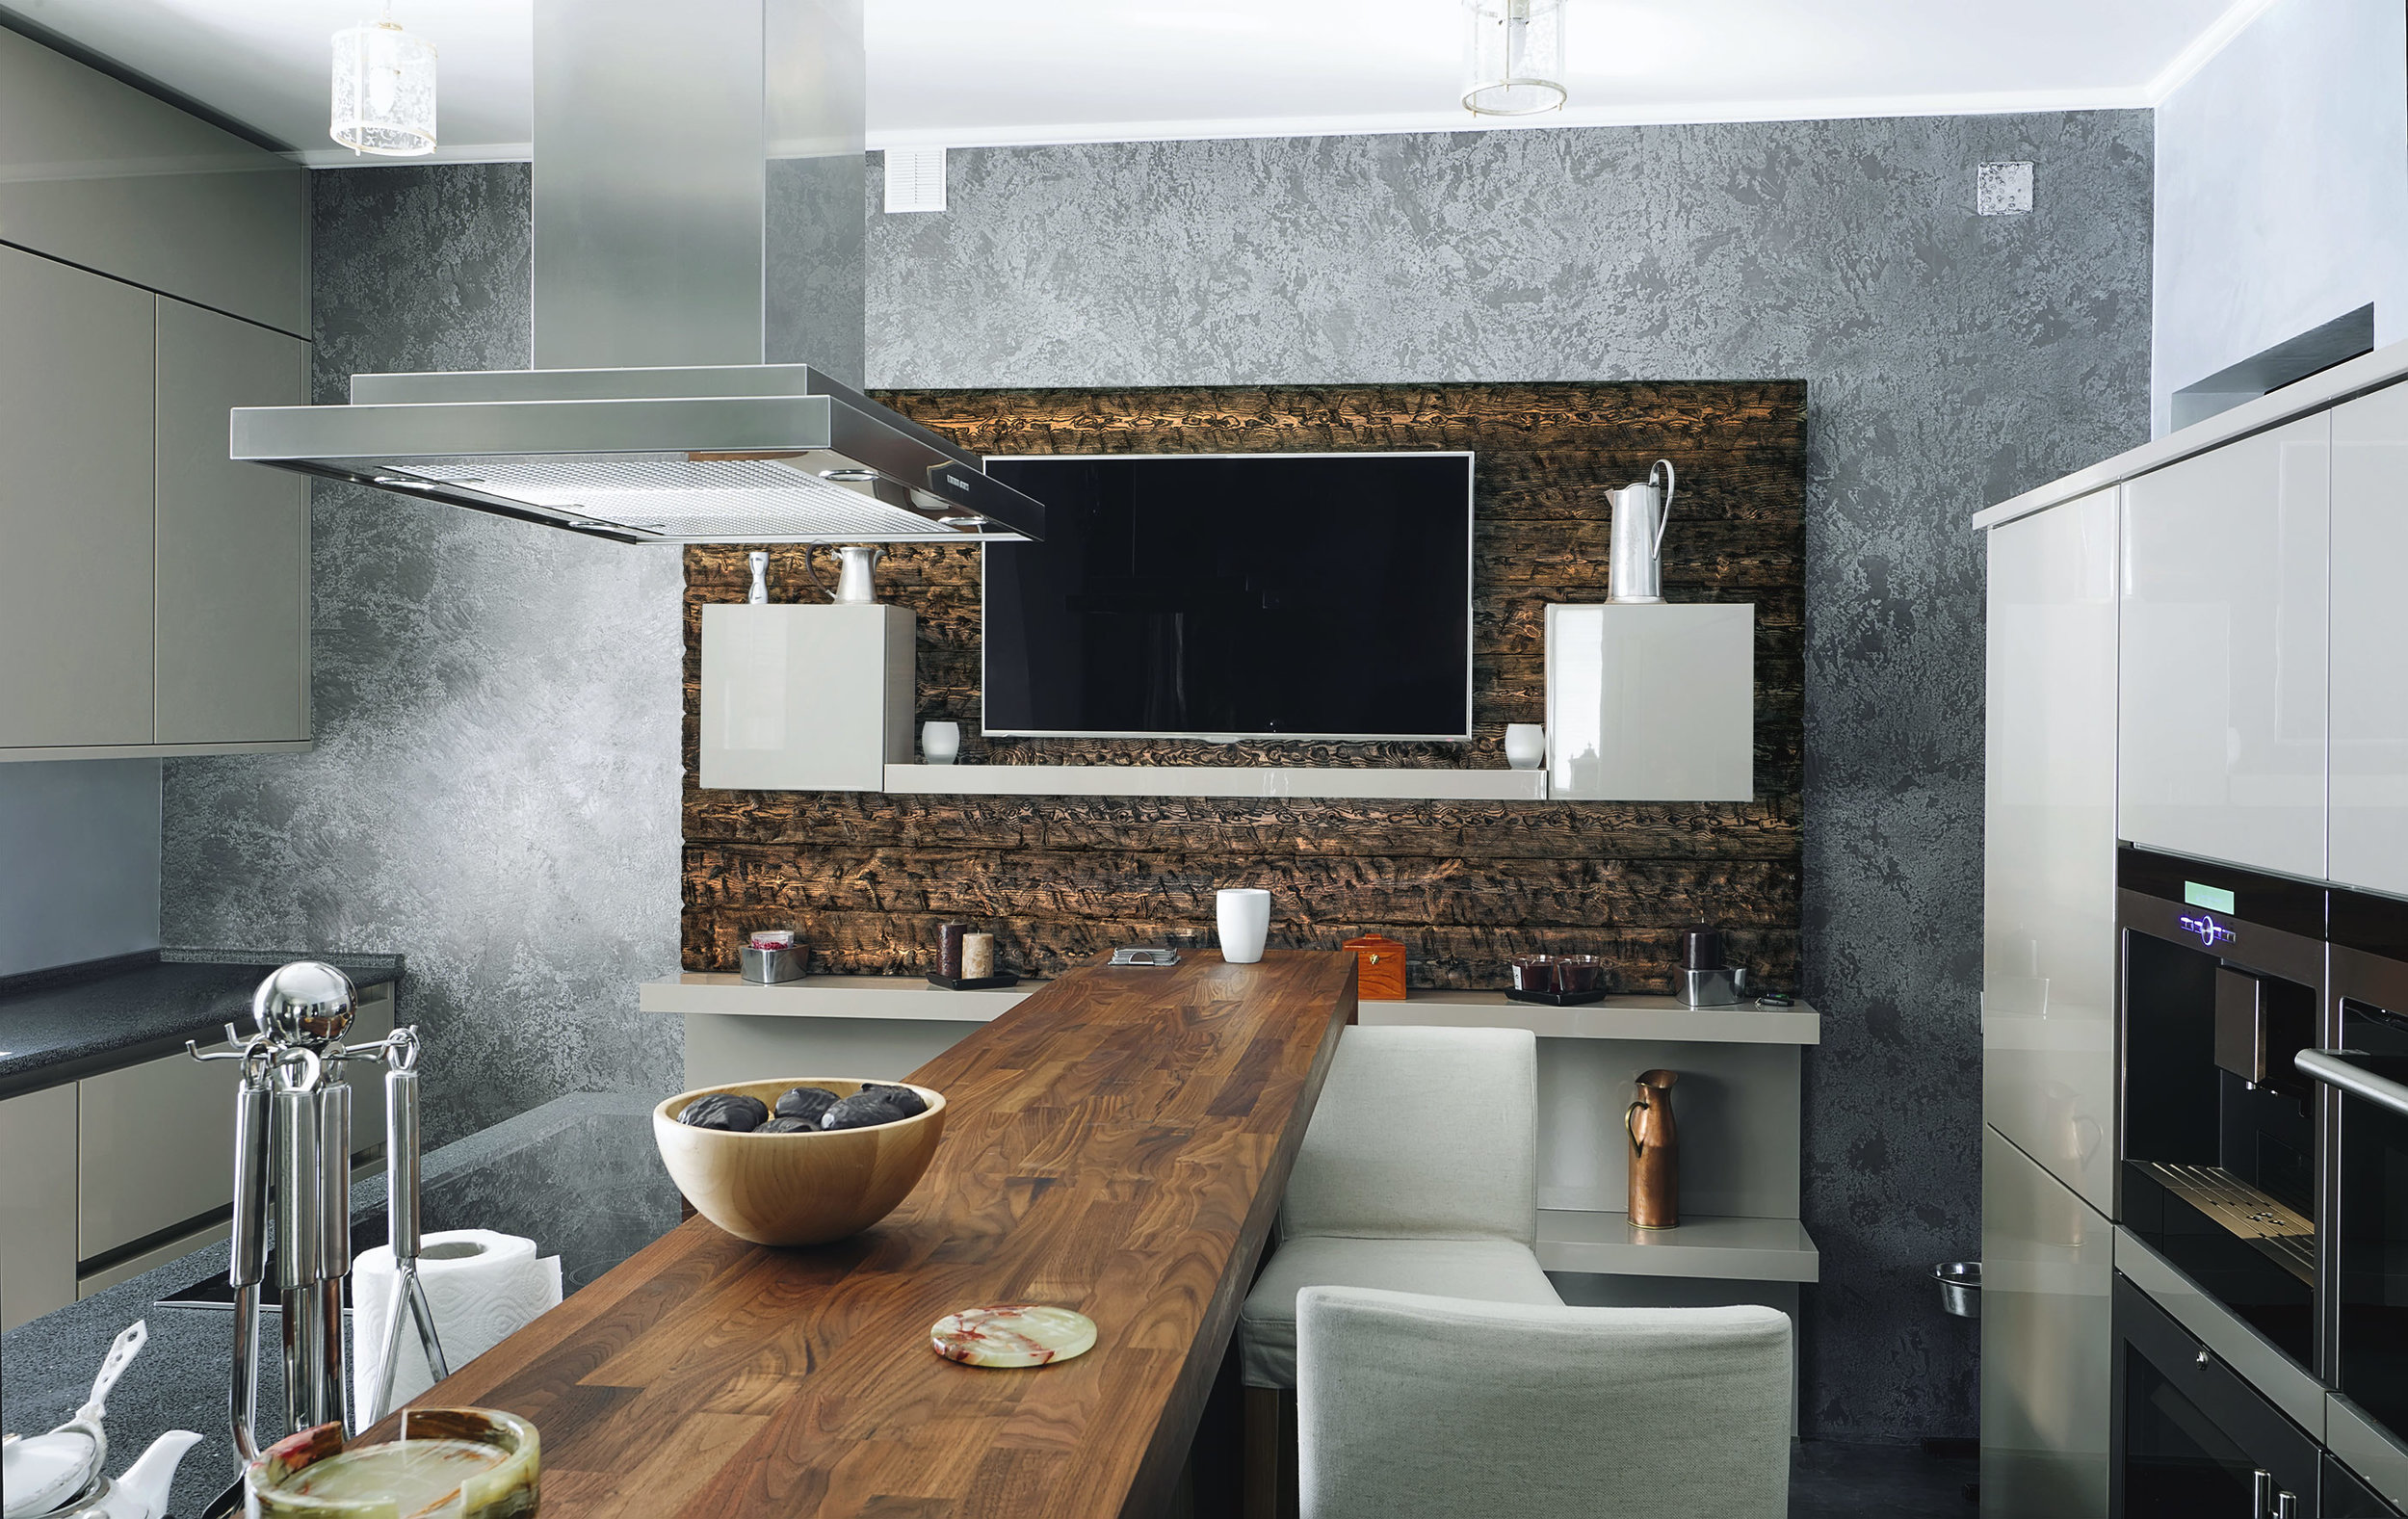 rwood-modern-kitchen-wooden-wall-2.jpg